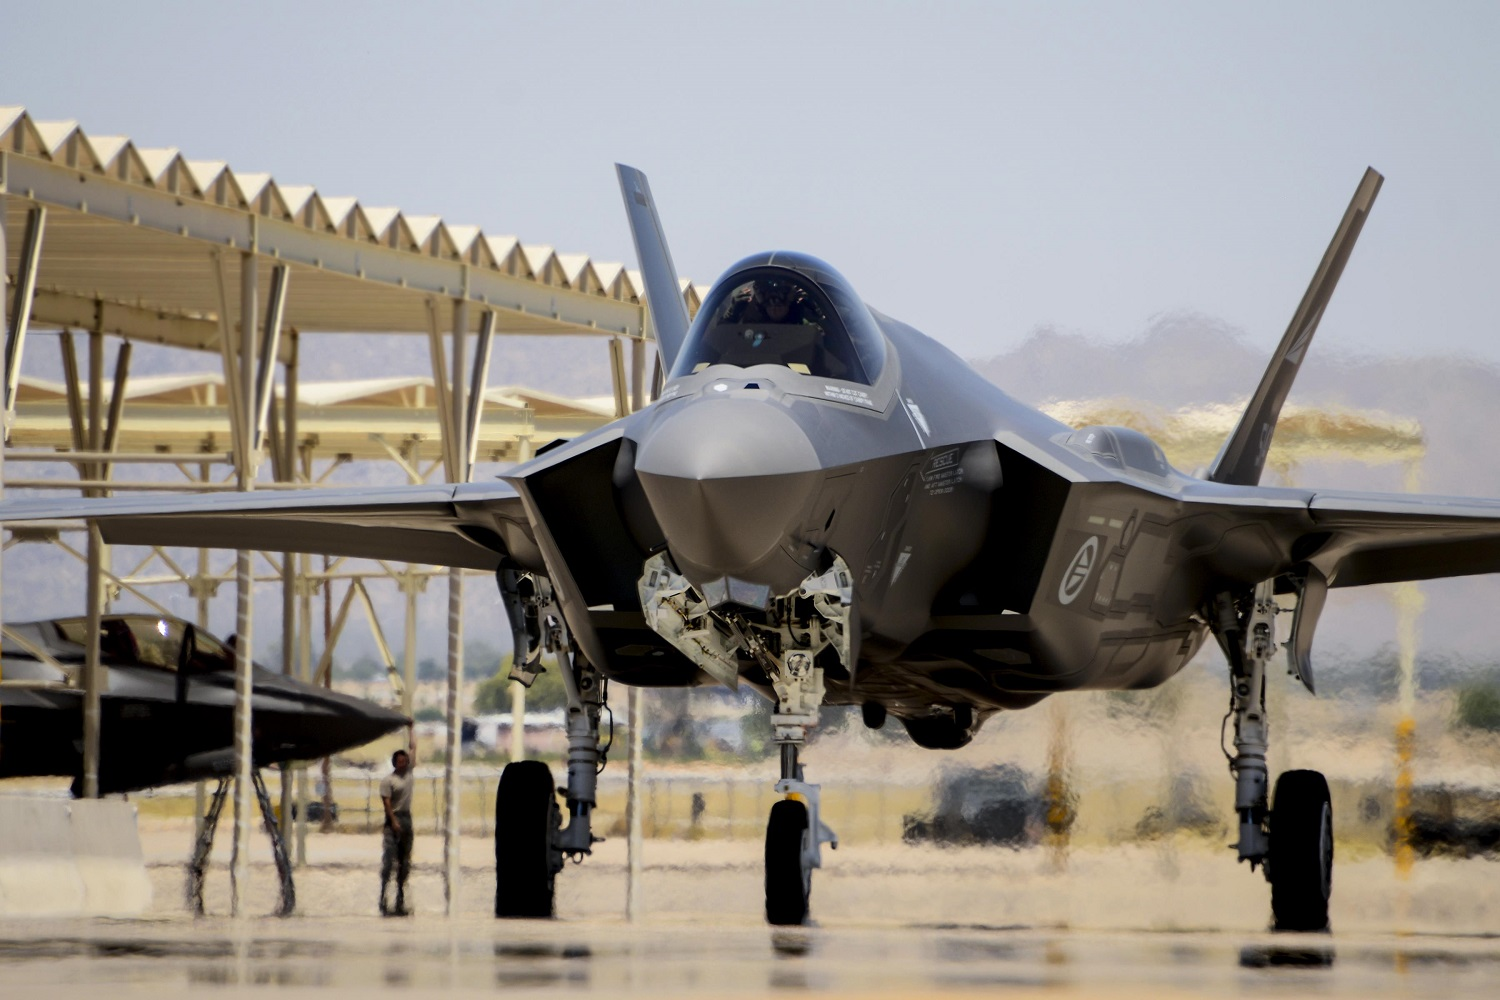 Explained: What if Europe Tried to Build a F-35 Style Stealth Fighter?